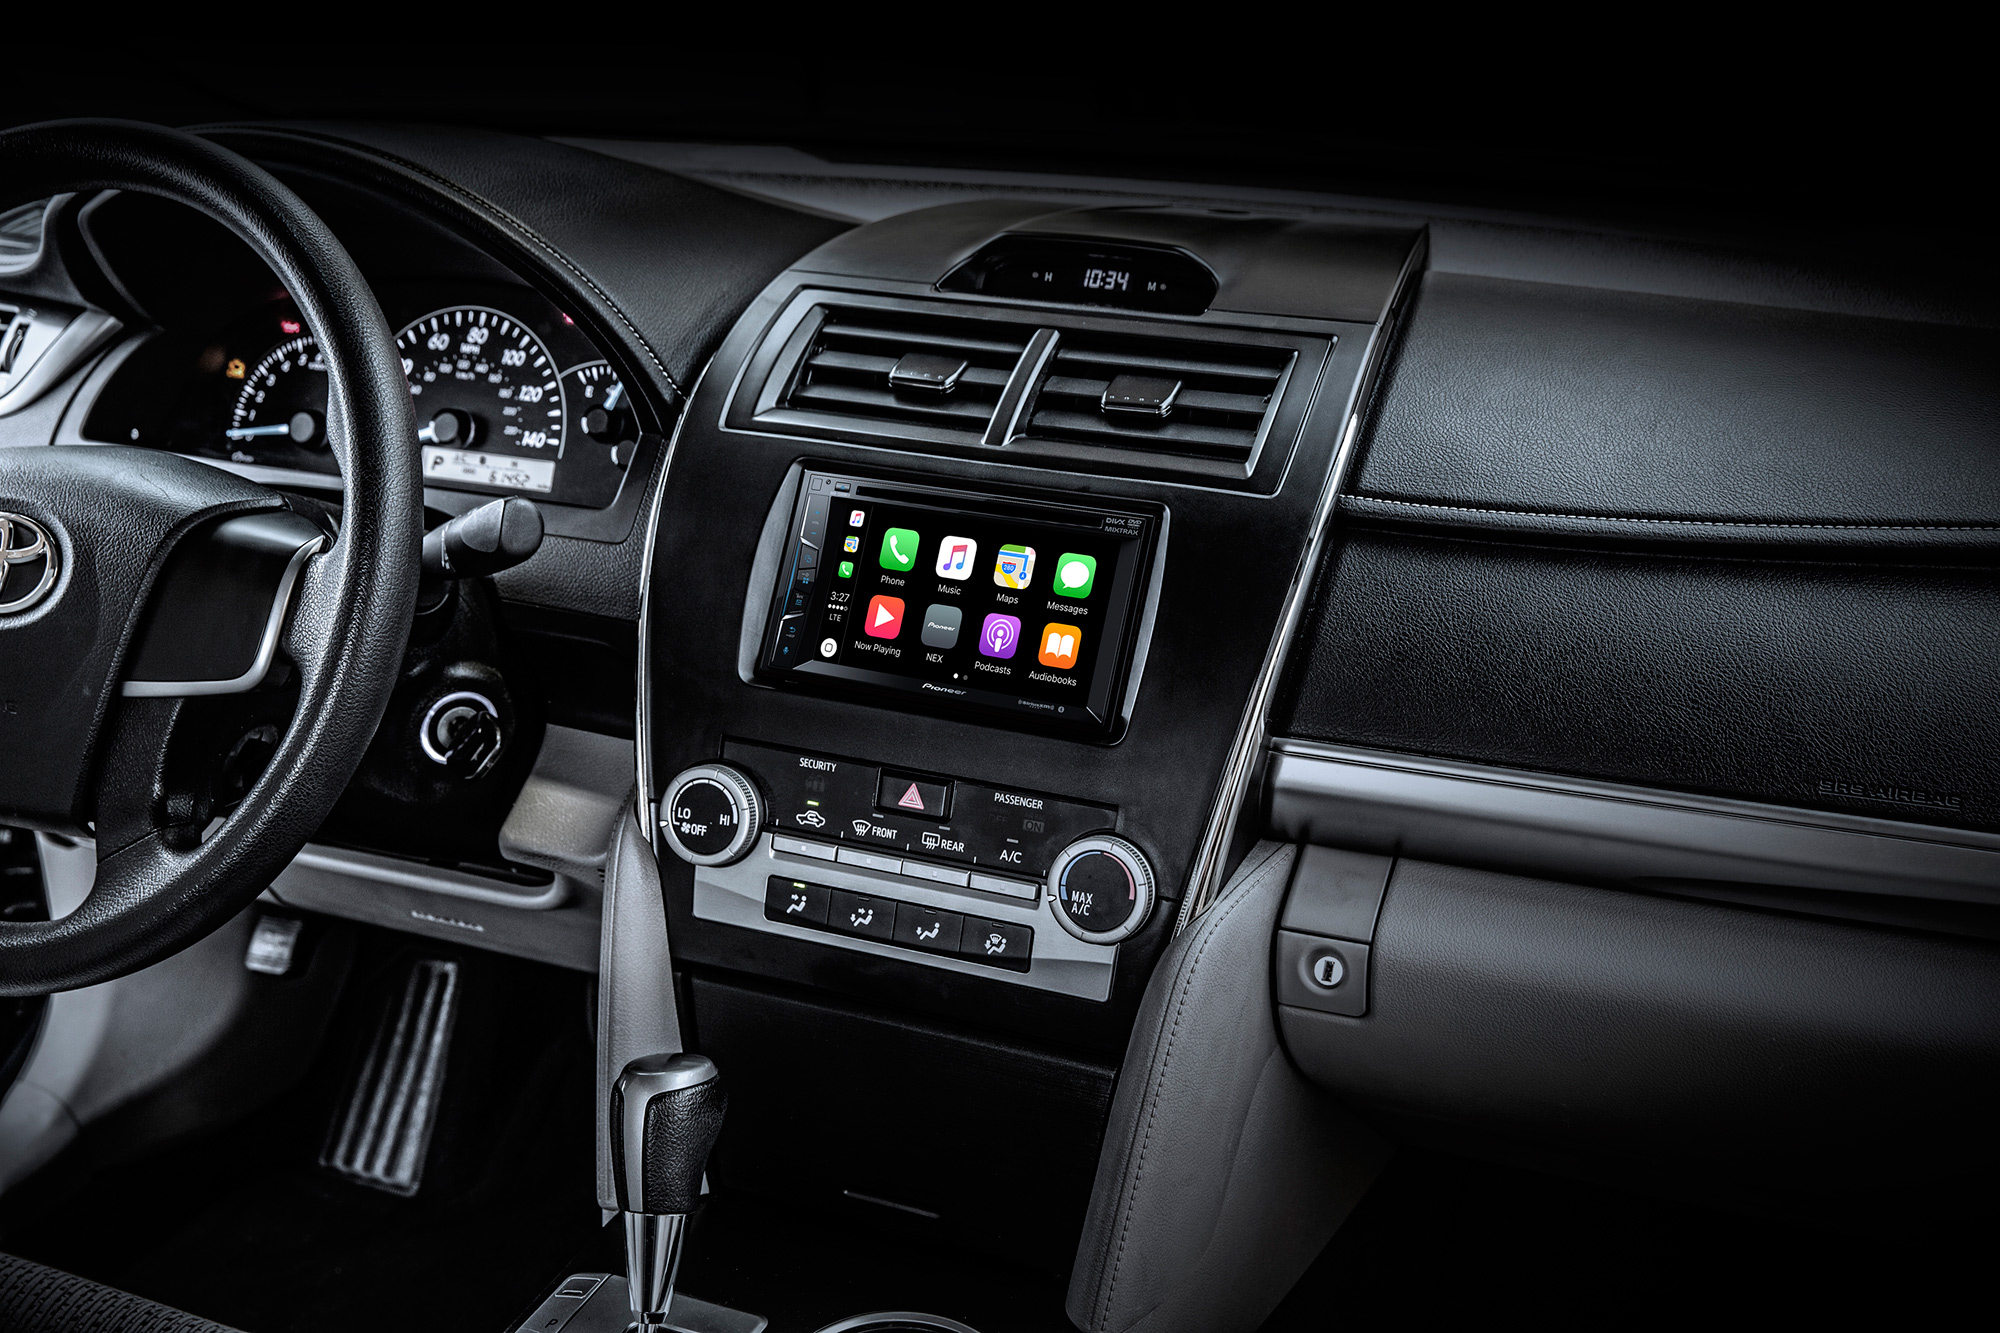 pioneer 2300nex. pioneer electronics has announced its new nex products, which will be coming out in july. the line extend to five in-dash 2300nex 1